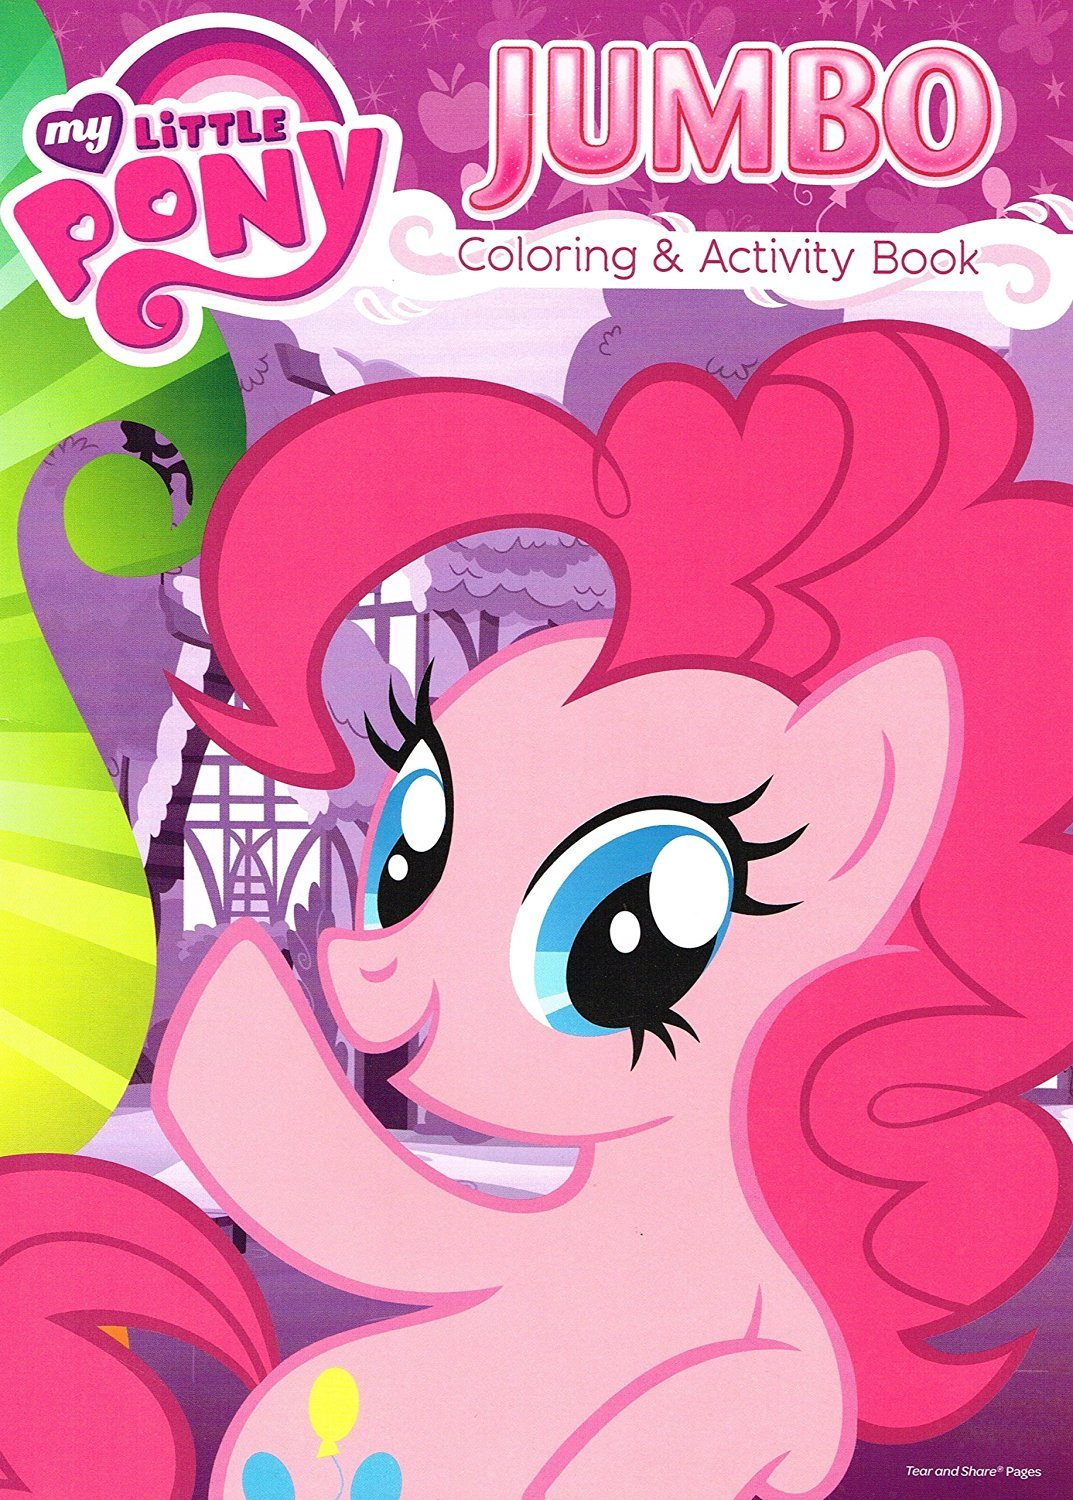 My Little Pony Jumbo Coloring and Activity Book